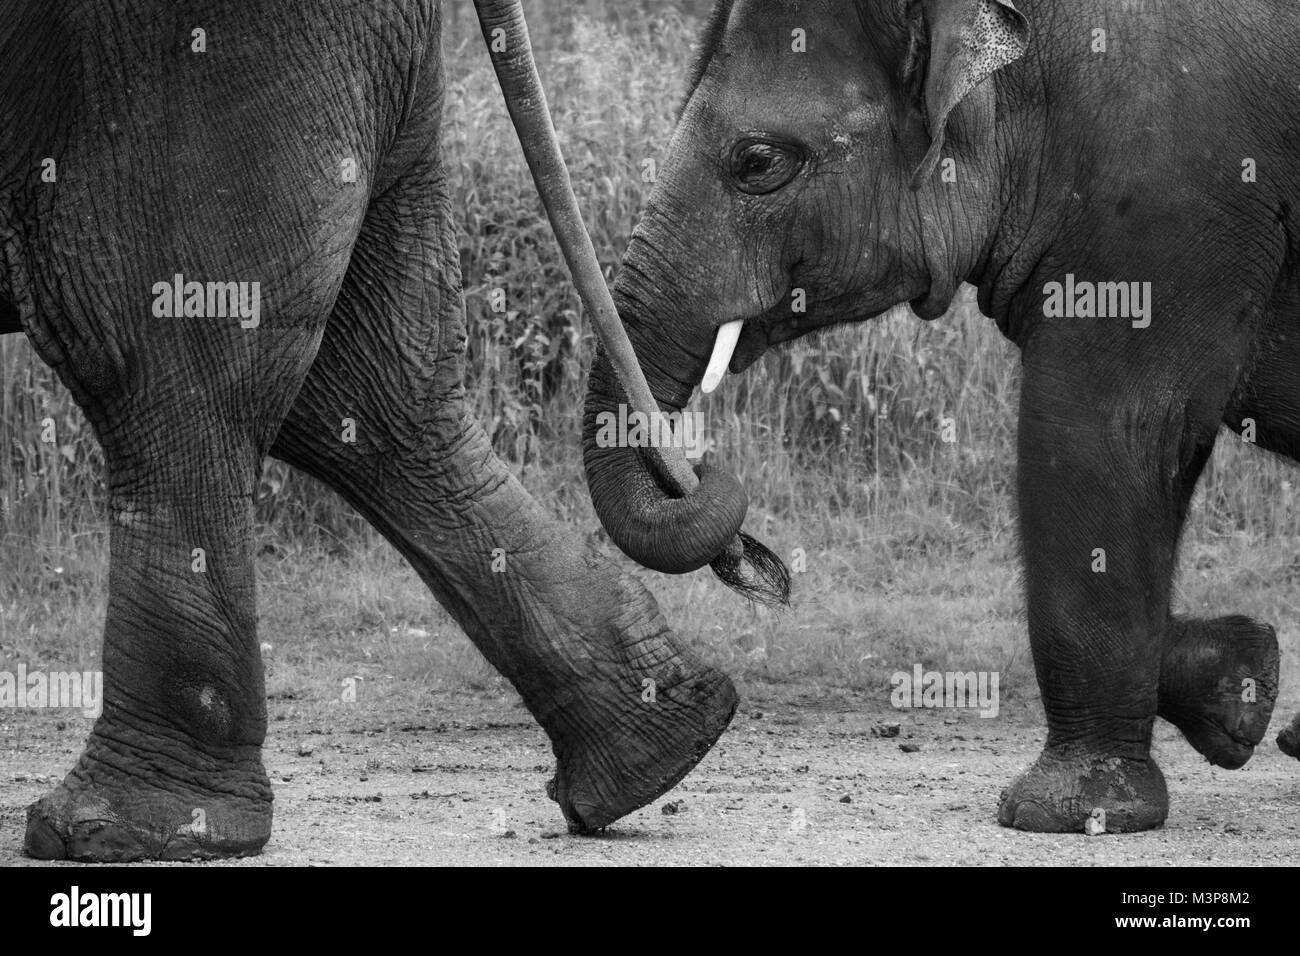 Asian Elephants walking in line, one elephants trunk holding another's tail at ZSL Whipsnade Zoo - Stock Image